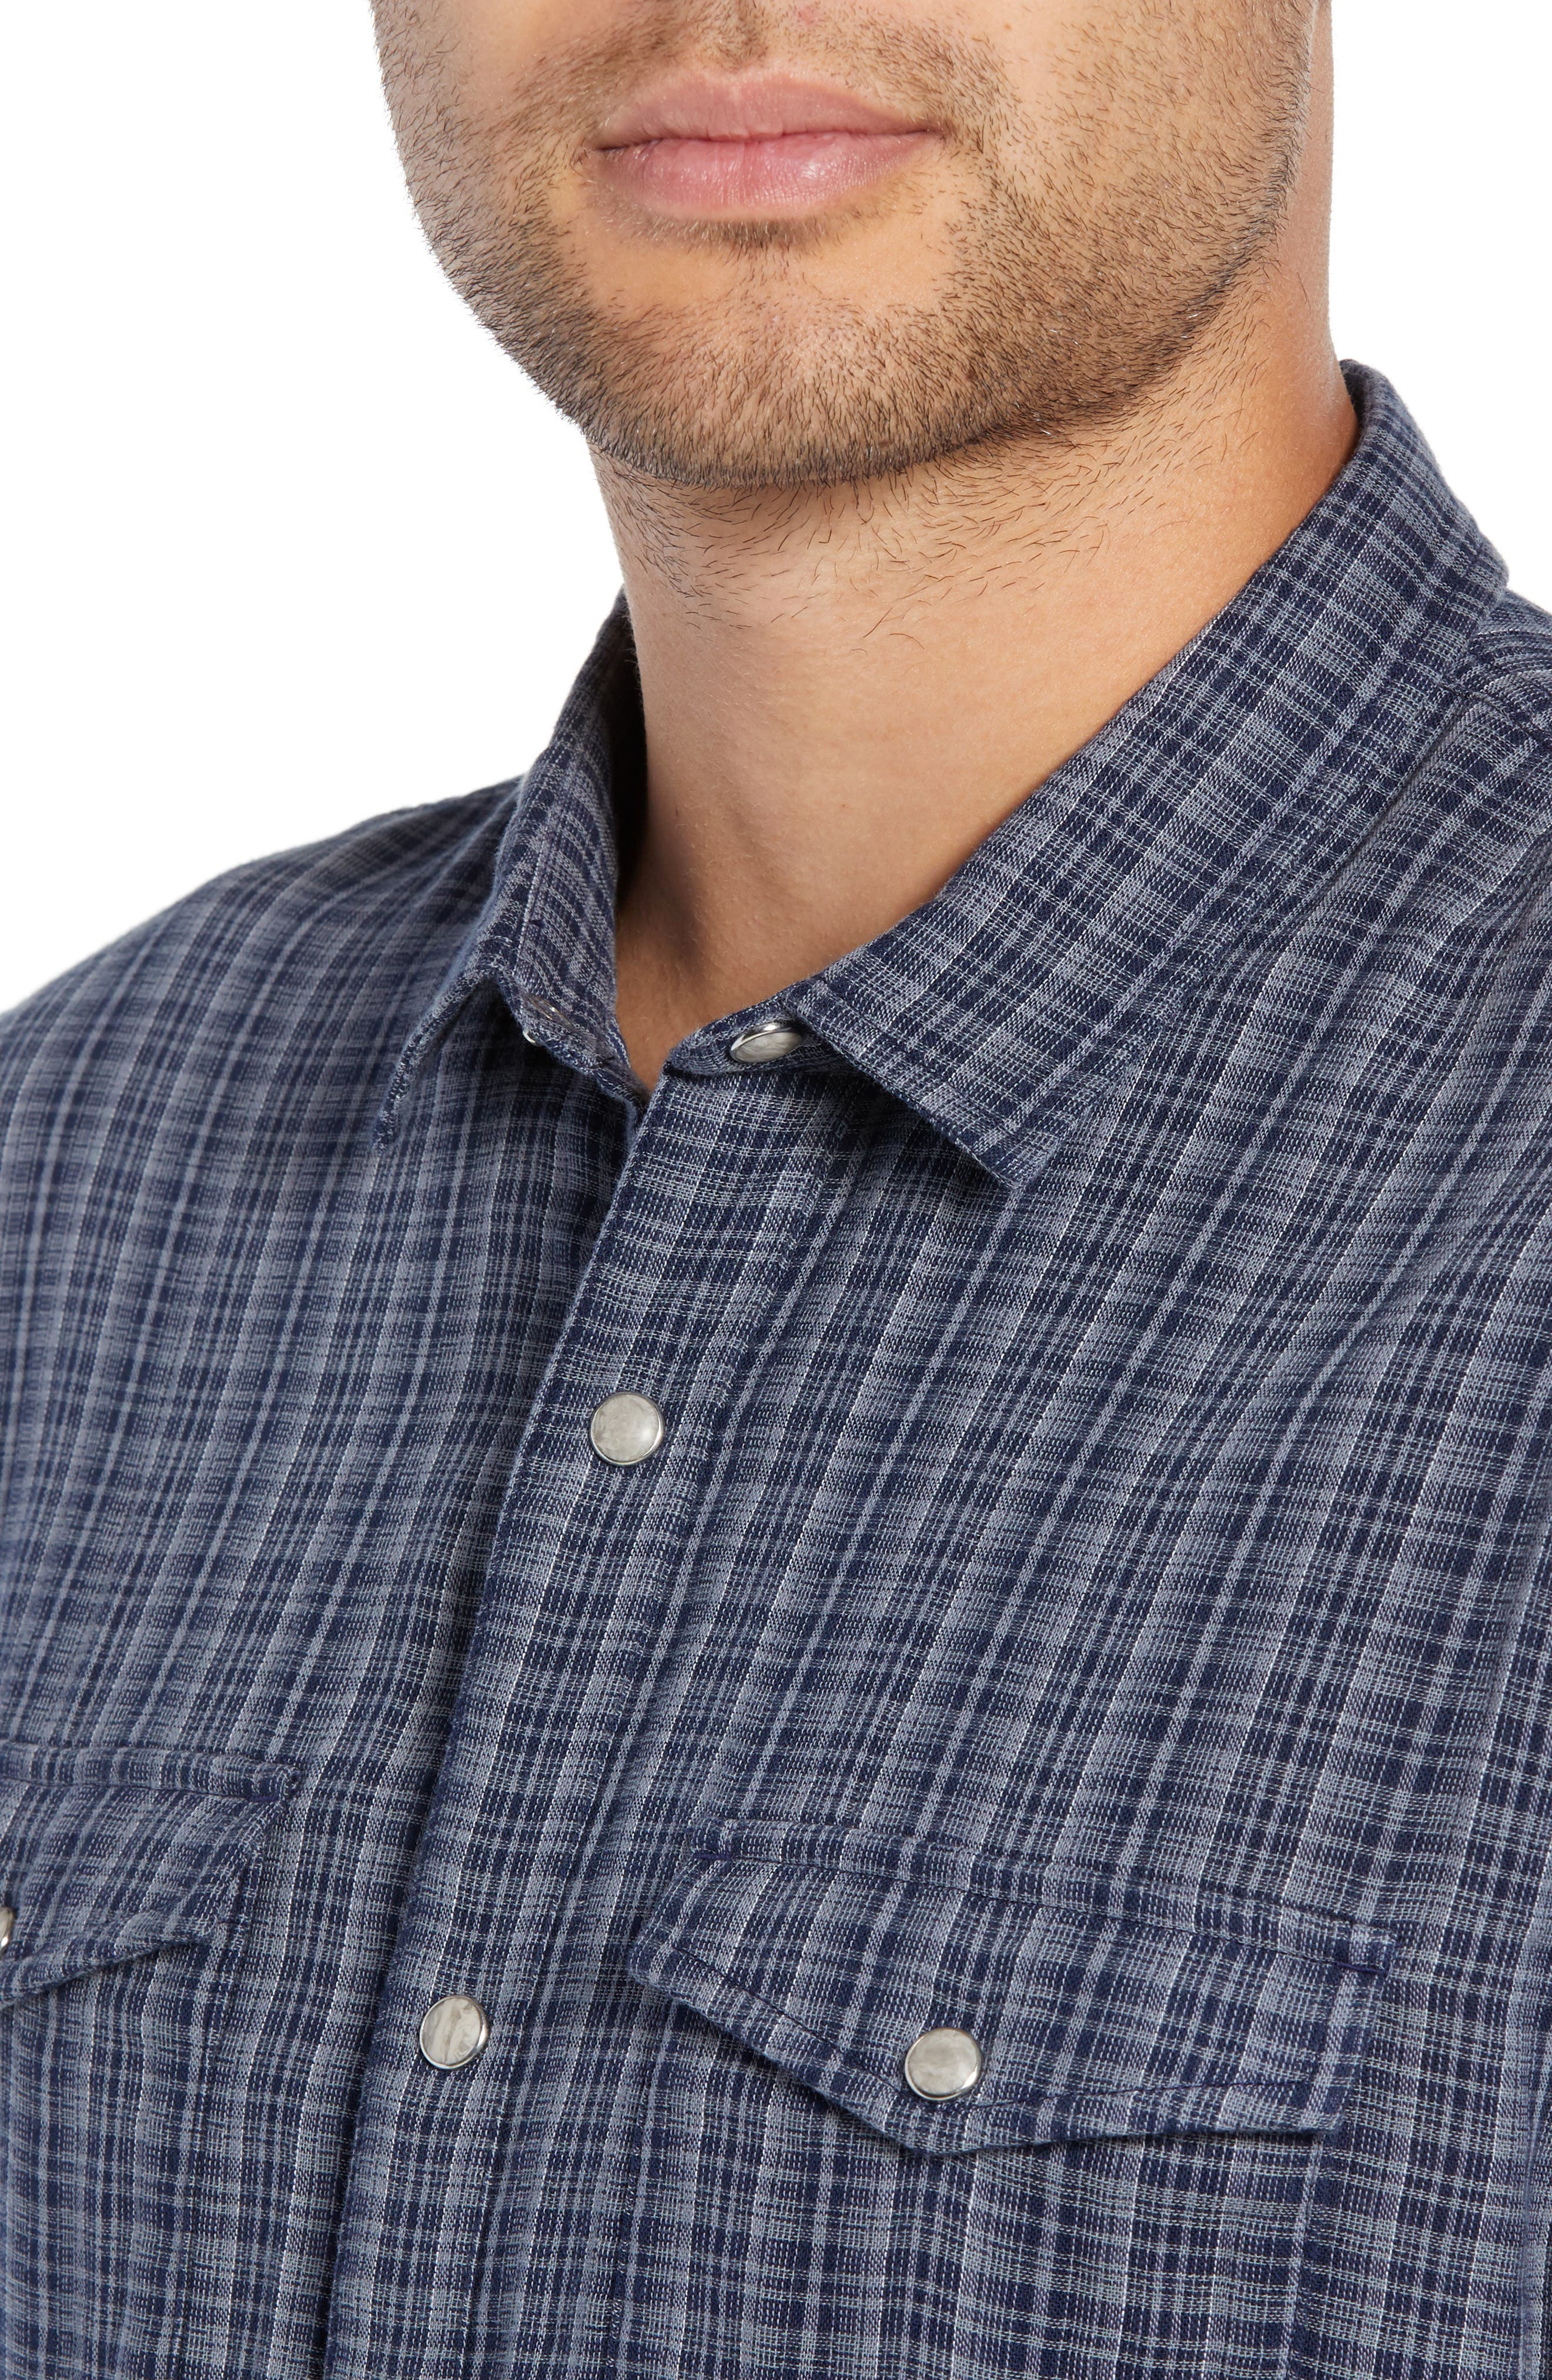 Regular Fit Double Pocket Sport Shirt,                             Alternate thumbnail 2, color,                             NIGHT SKY